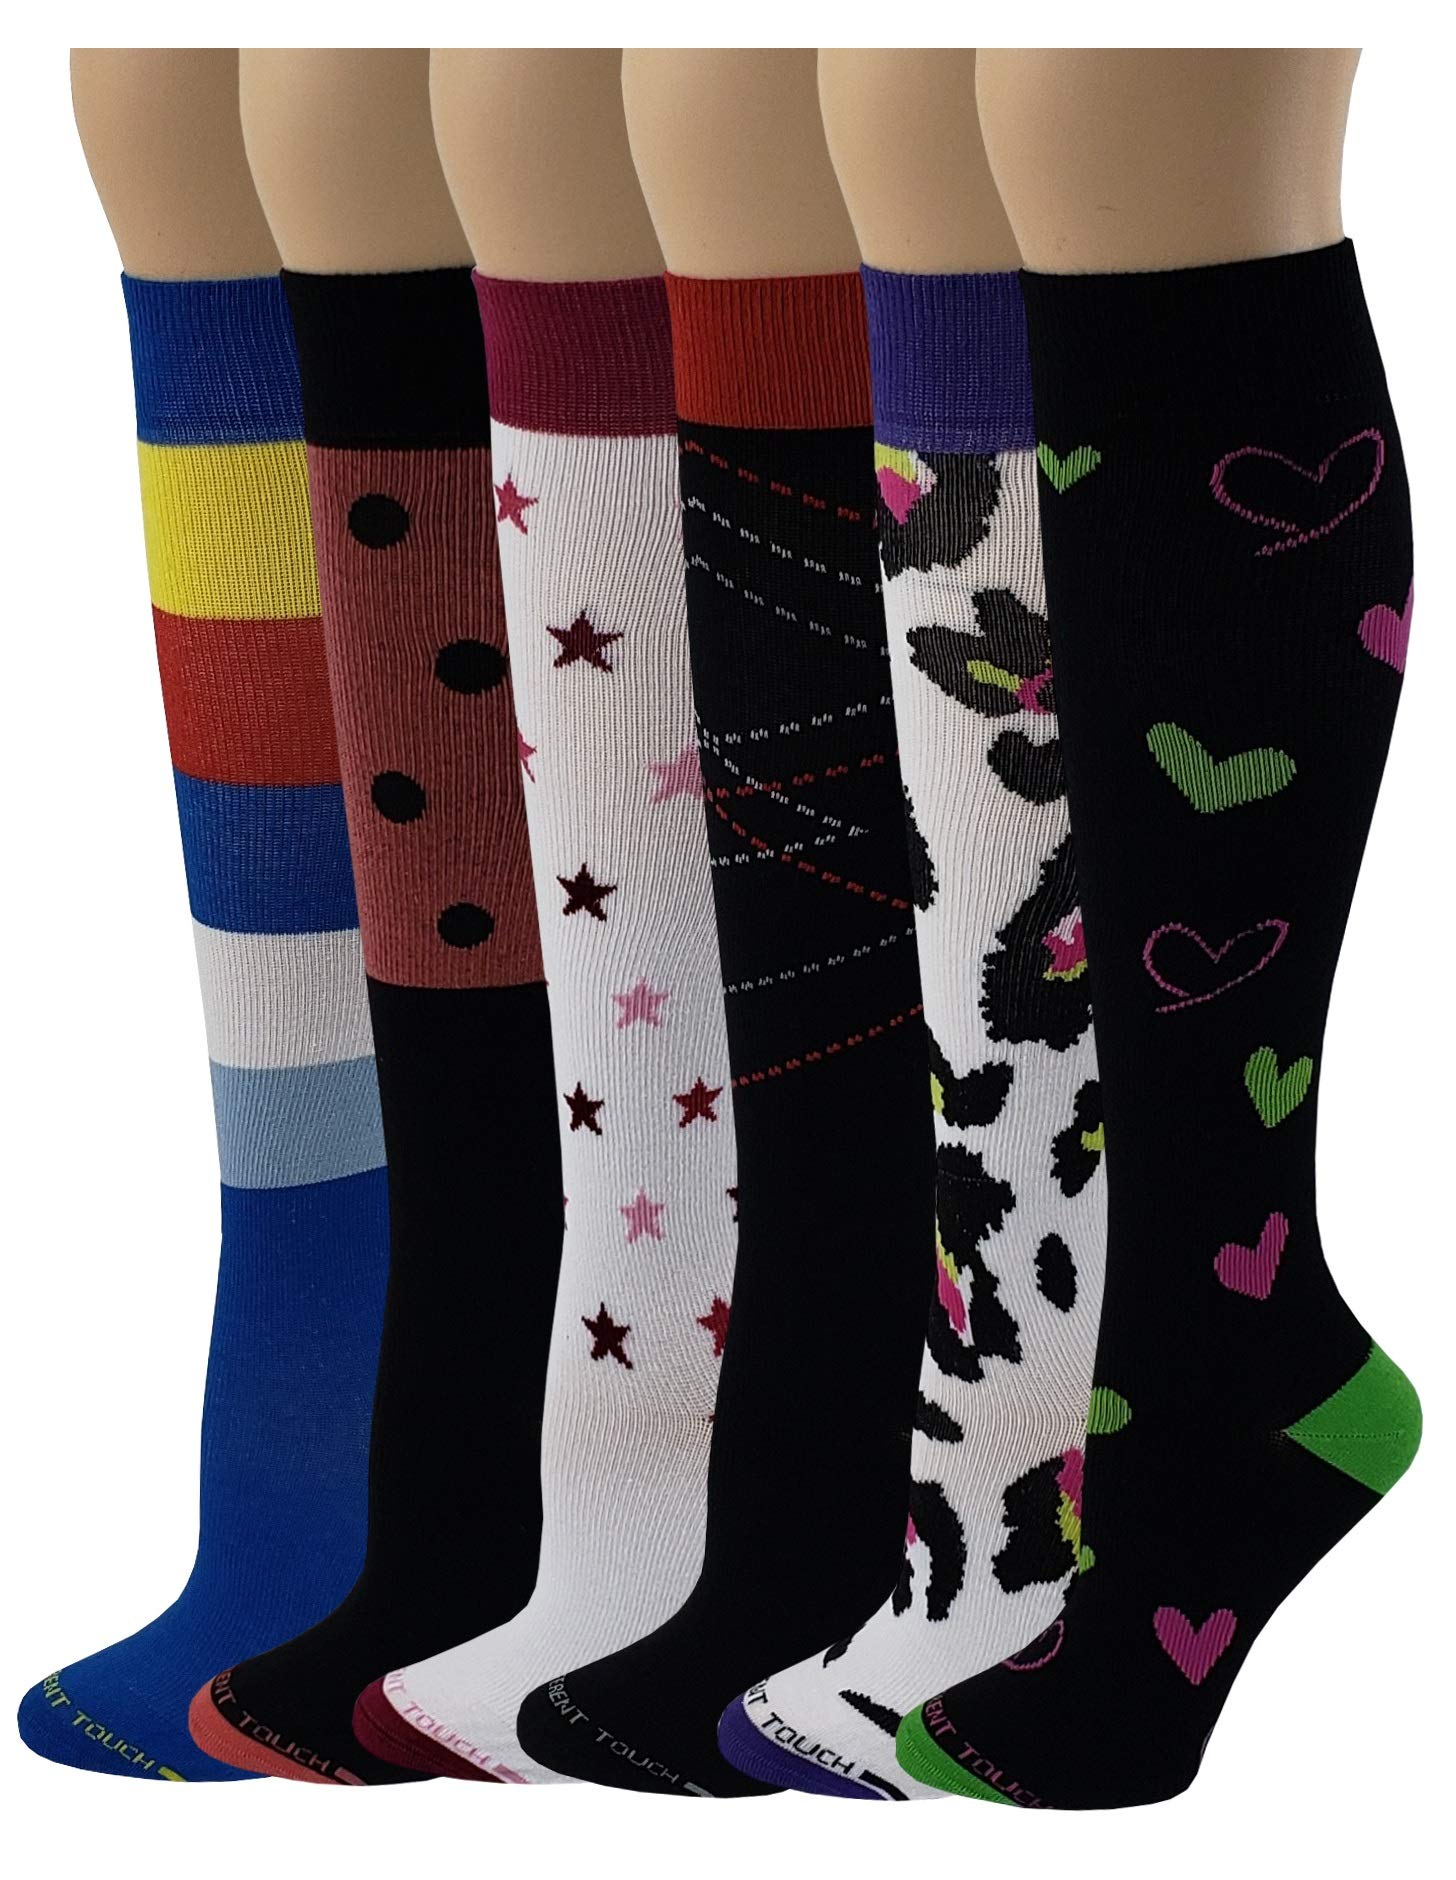 6 Pairs Pack Women Travelers, Anti-Fatigue, Graduated Compression Knee High Socks 9-11 (Assorted Printed #C)